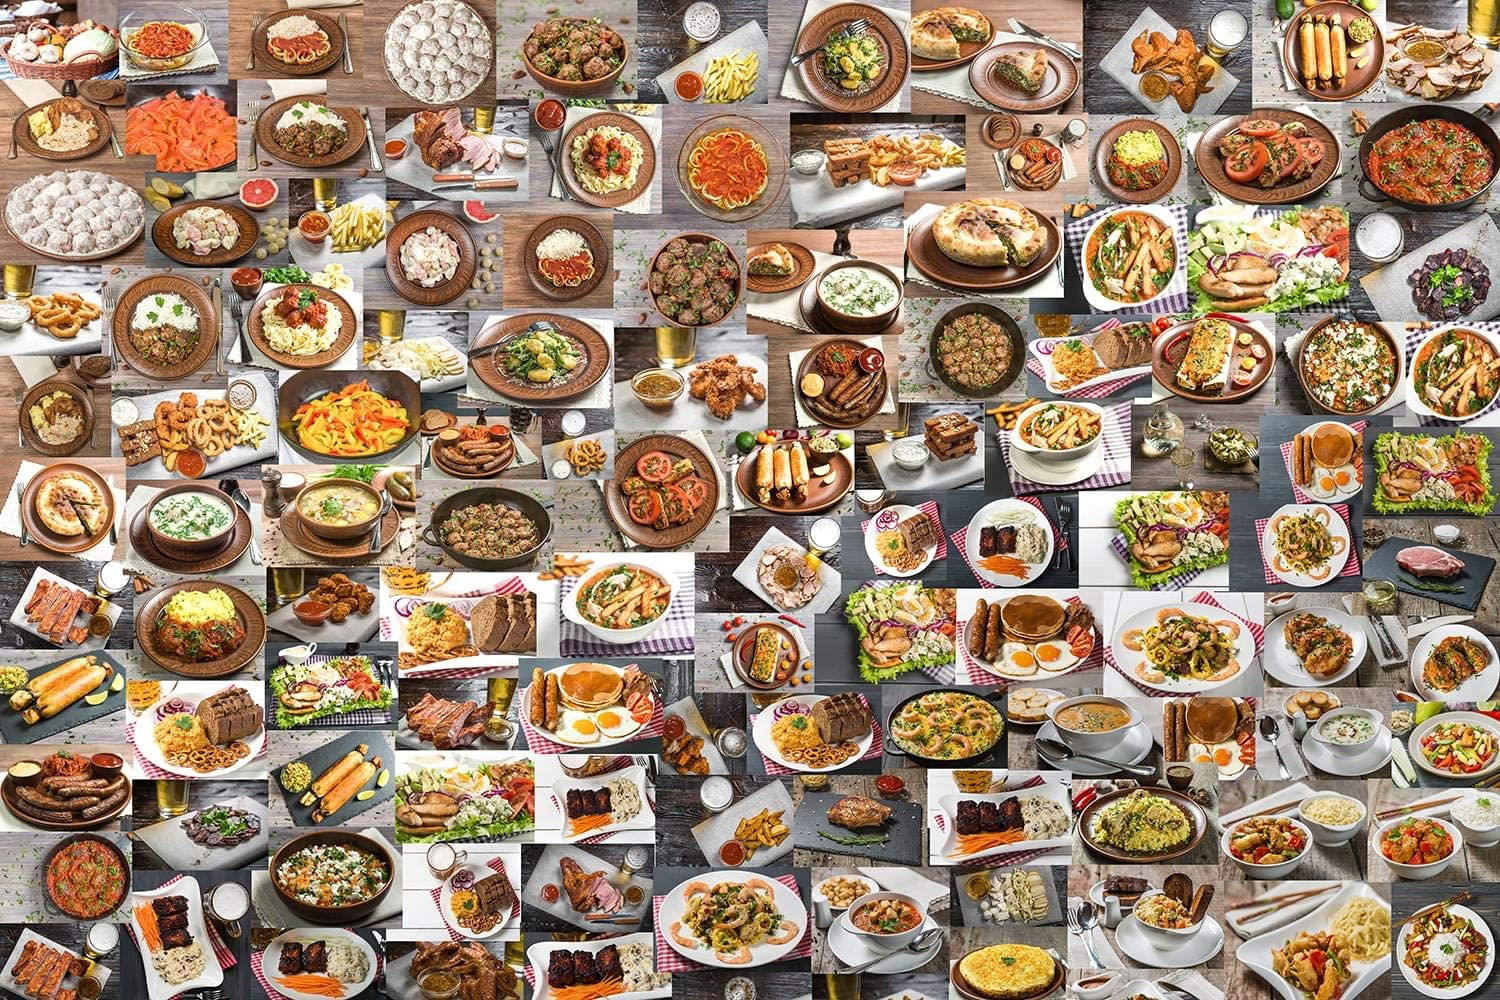 Food Puzzle for Adults, Kids, and Families | 1000 Piece Jigsaw Puzzle | Challenging Puzzle Toy | Fun Puzzle Games for Family Game Night | 28 x 20 inches